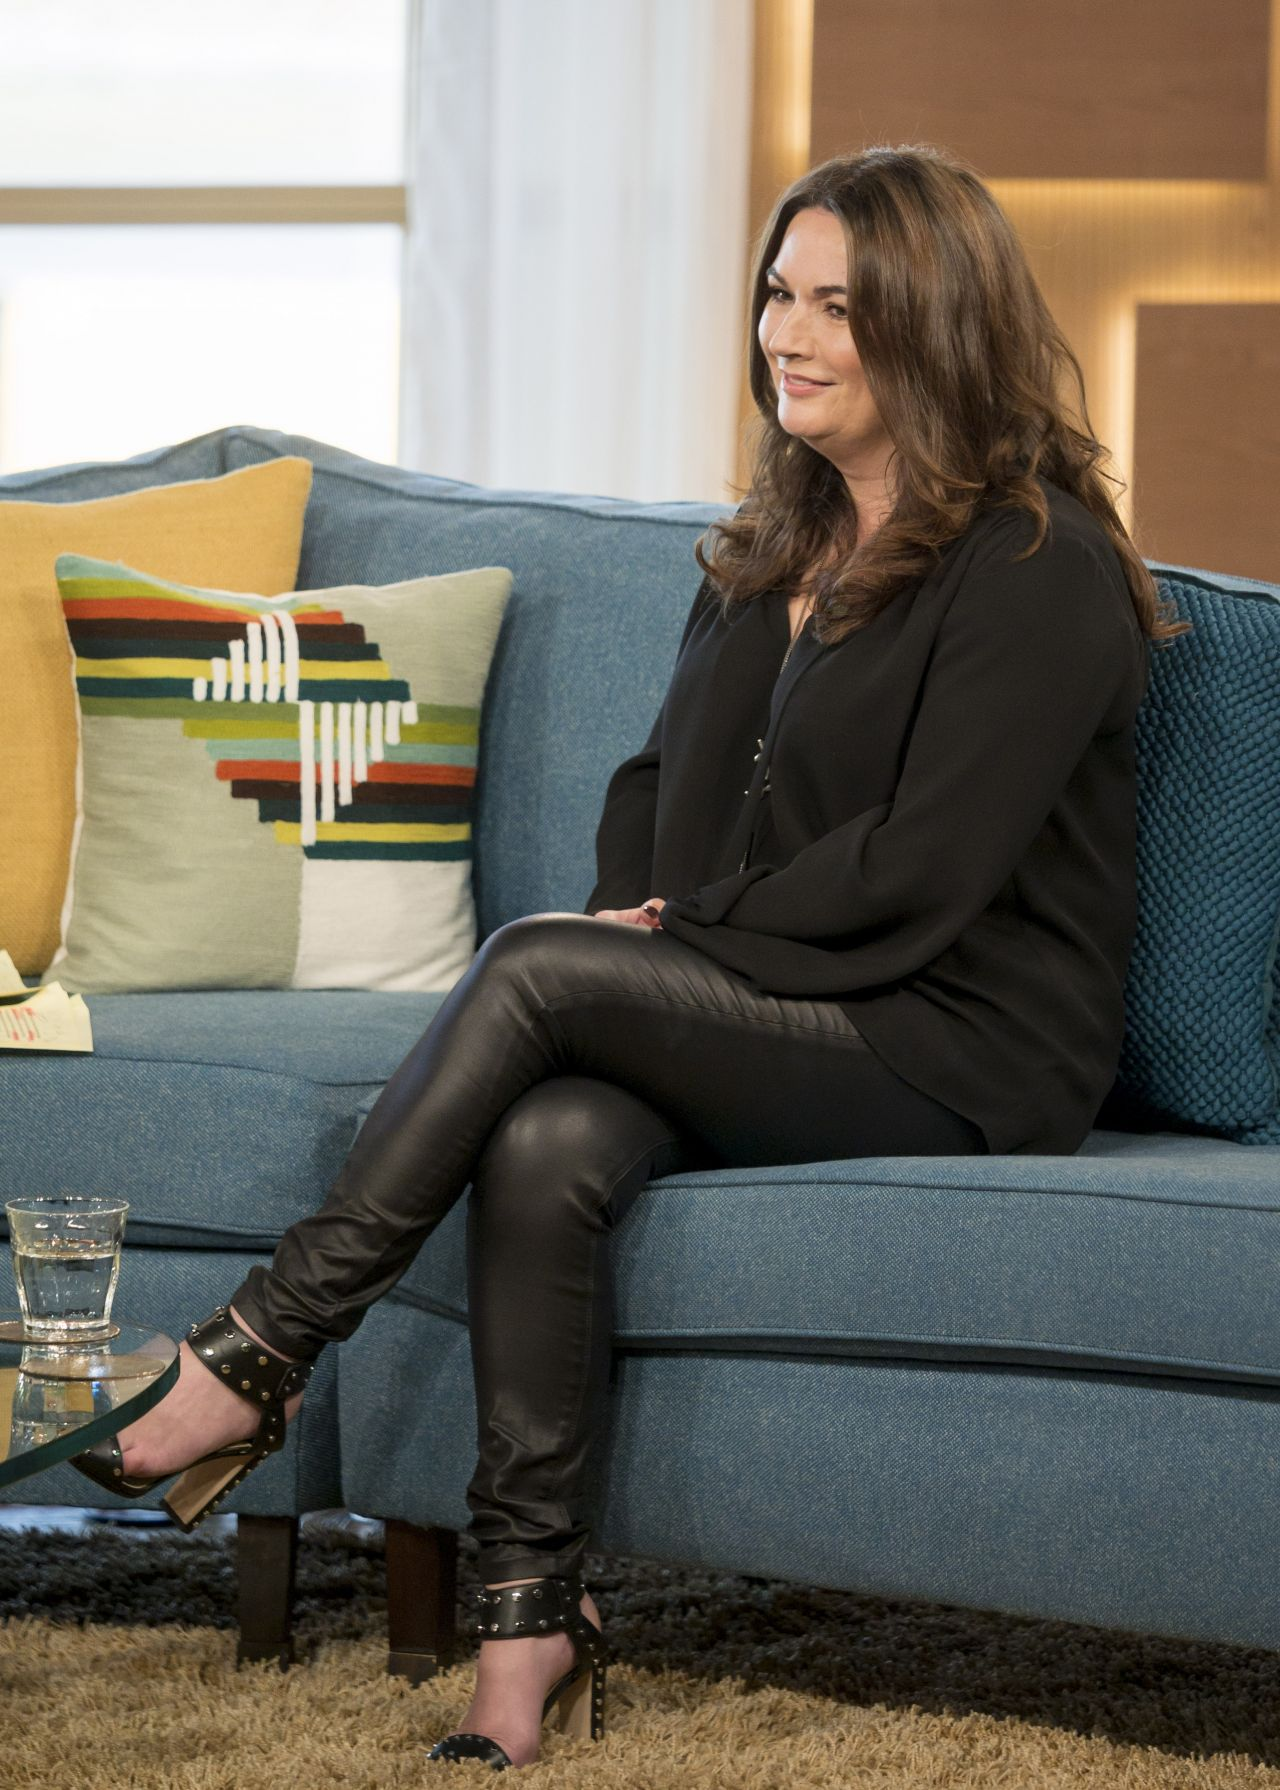 Debbie Rush This Morning Tv Show In London 11 10 2017